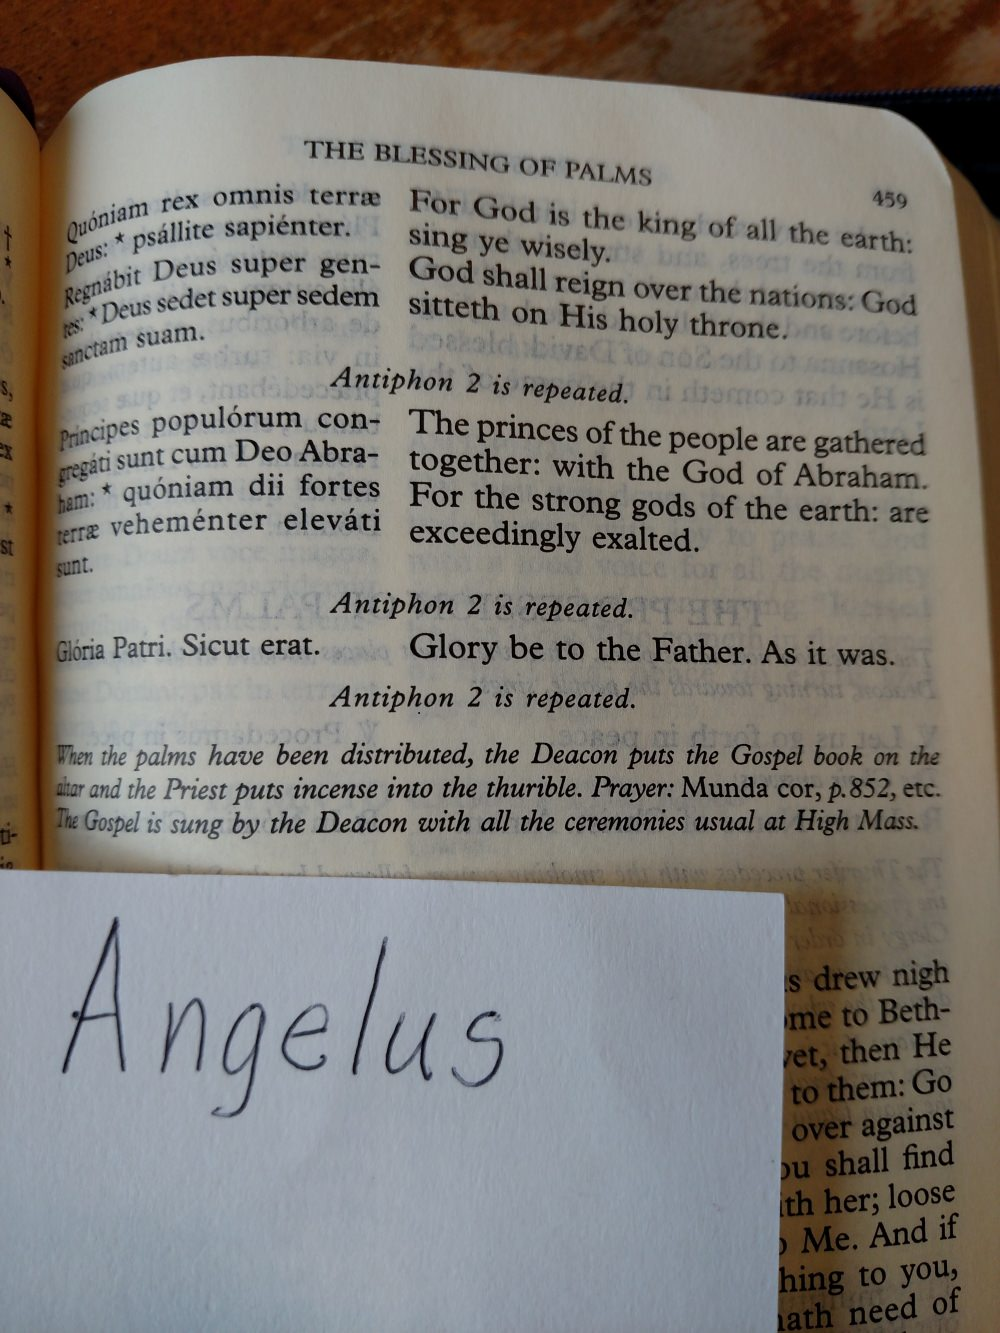 1962 Missal Palm Sunday pages - The Roman Catholic Daily Missal with Kyriale in Gregorian Notation, Angelus Press, Palm Sunday Blessing of the Palms.